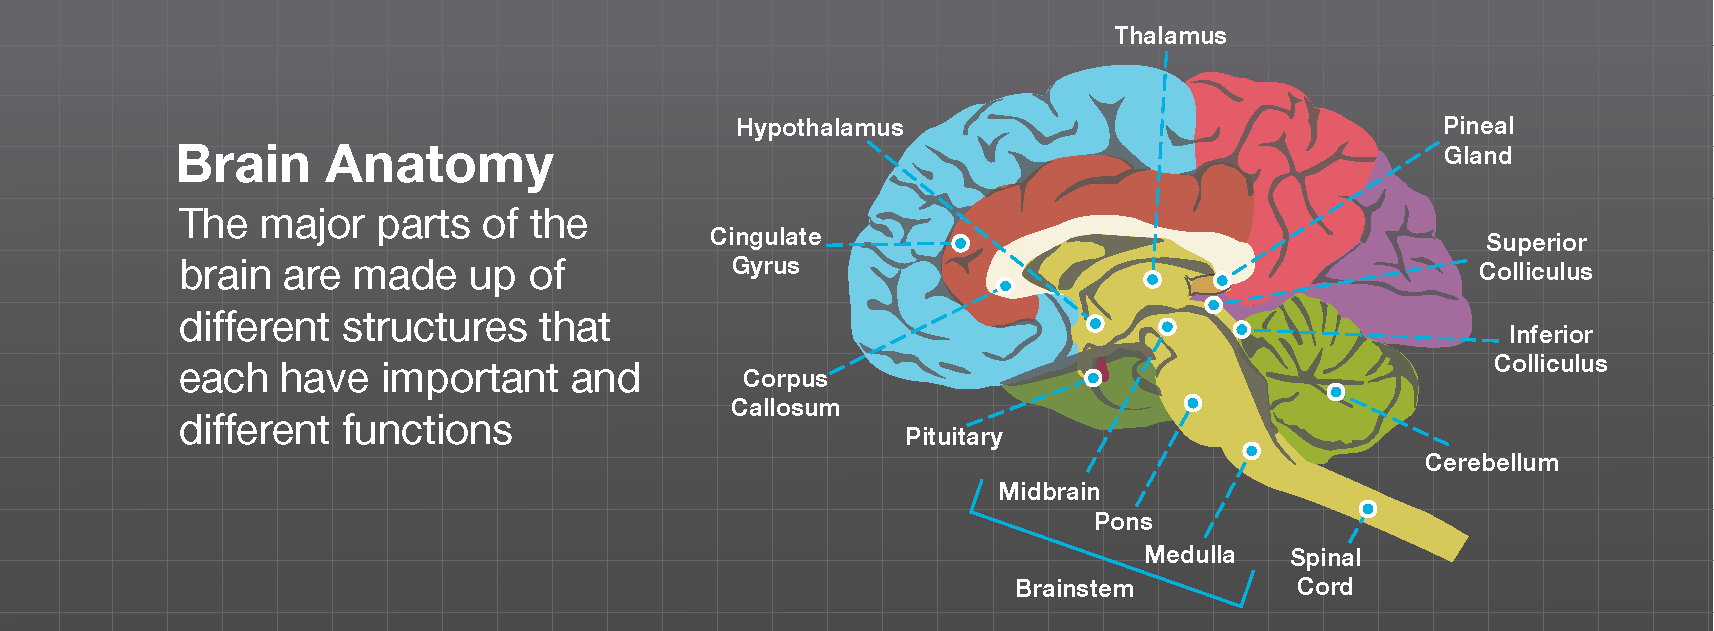 brain anatomy brainlab org